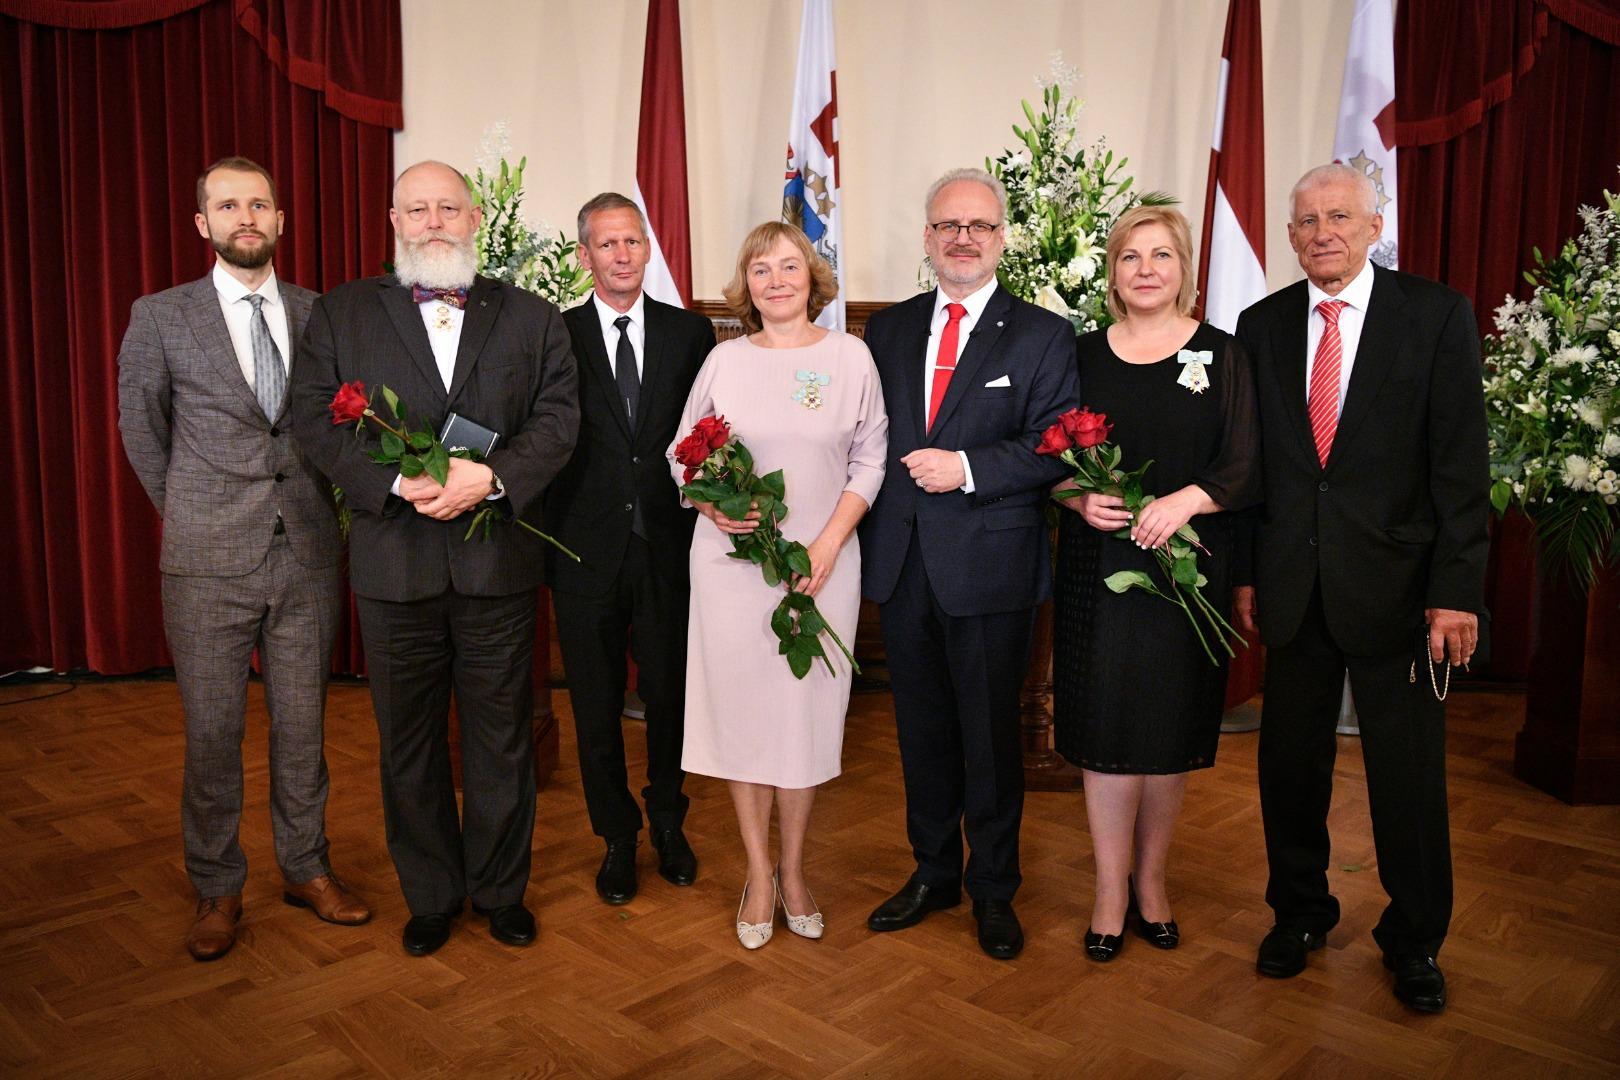 21.08.2020. Having assessed the professional contribution to the development of the judicial system and to the strengthening of the rule of law, the Chair of the Department of Administrative Cases of the Senate Veronika Krumina and Senator Jautrite Briede were awarded the Order of the Three Stars. President Egils Levits presented the award on the anniversary of the adoption of the Constitutional Law ''On the State Status of the Republic of Latvia''.